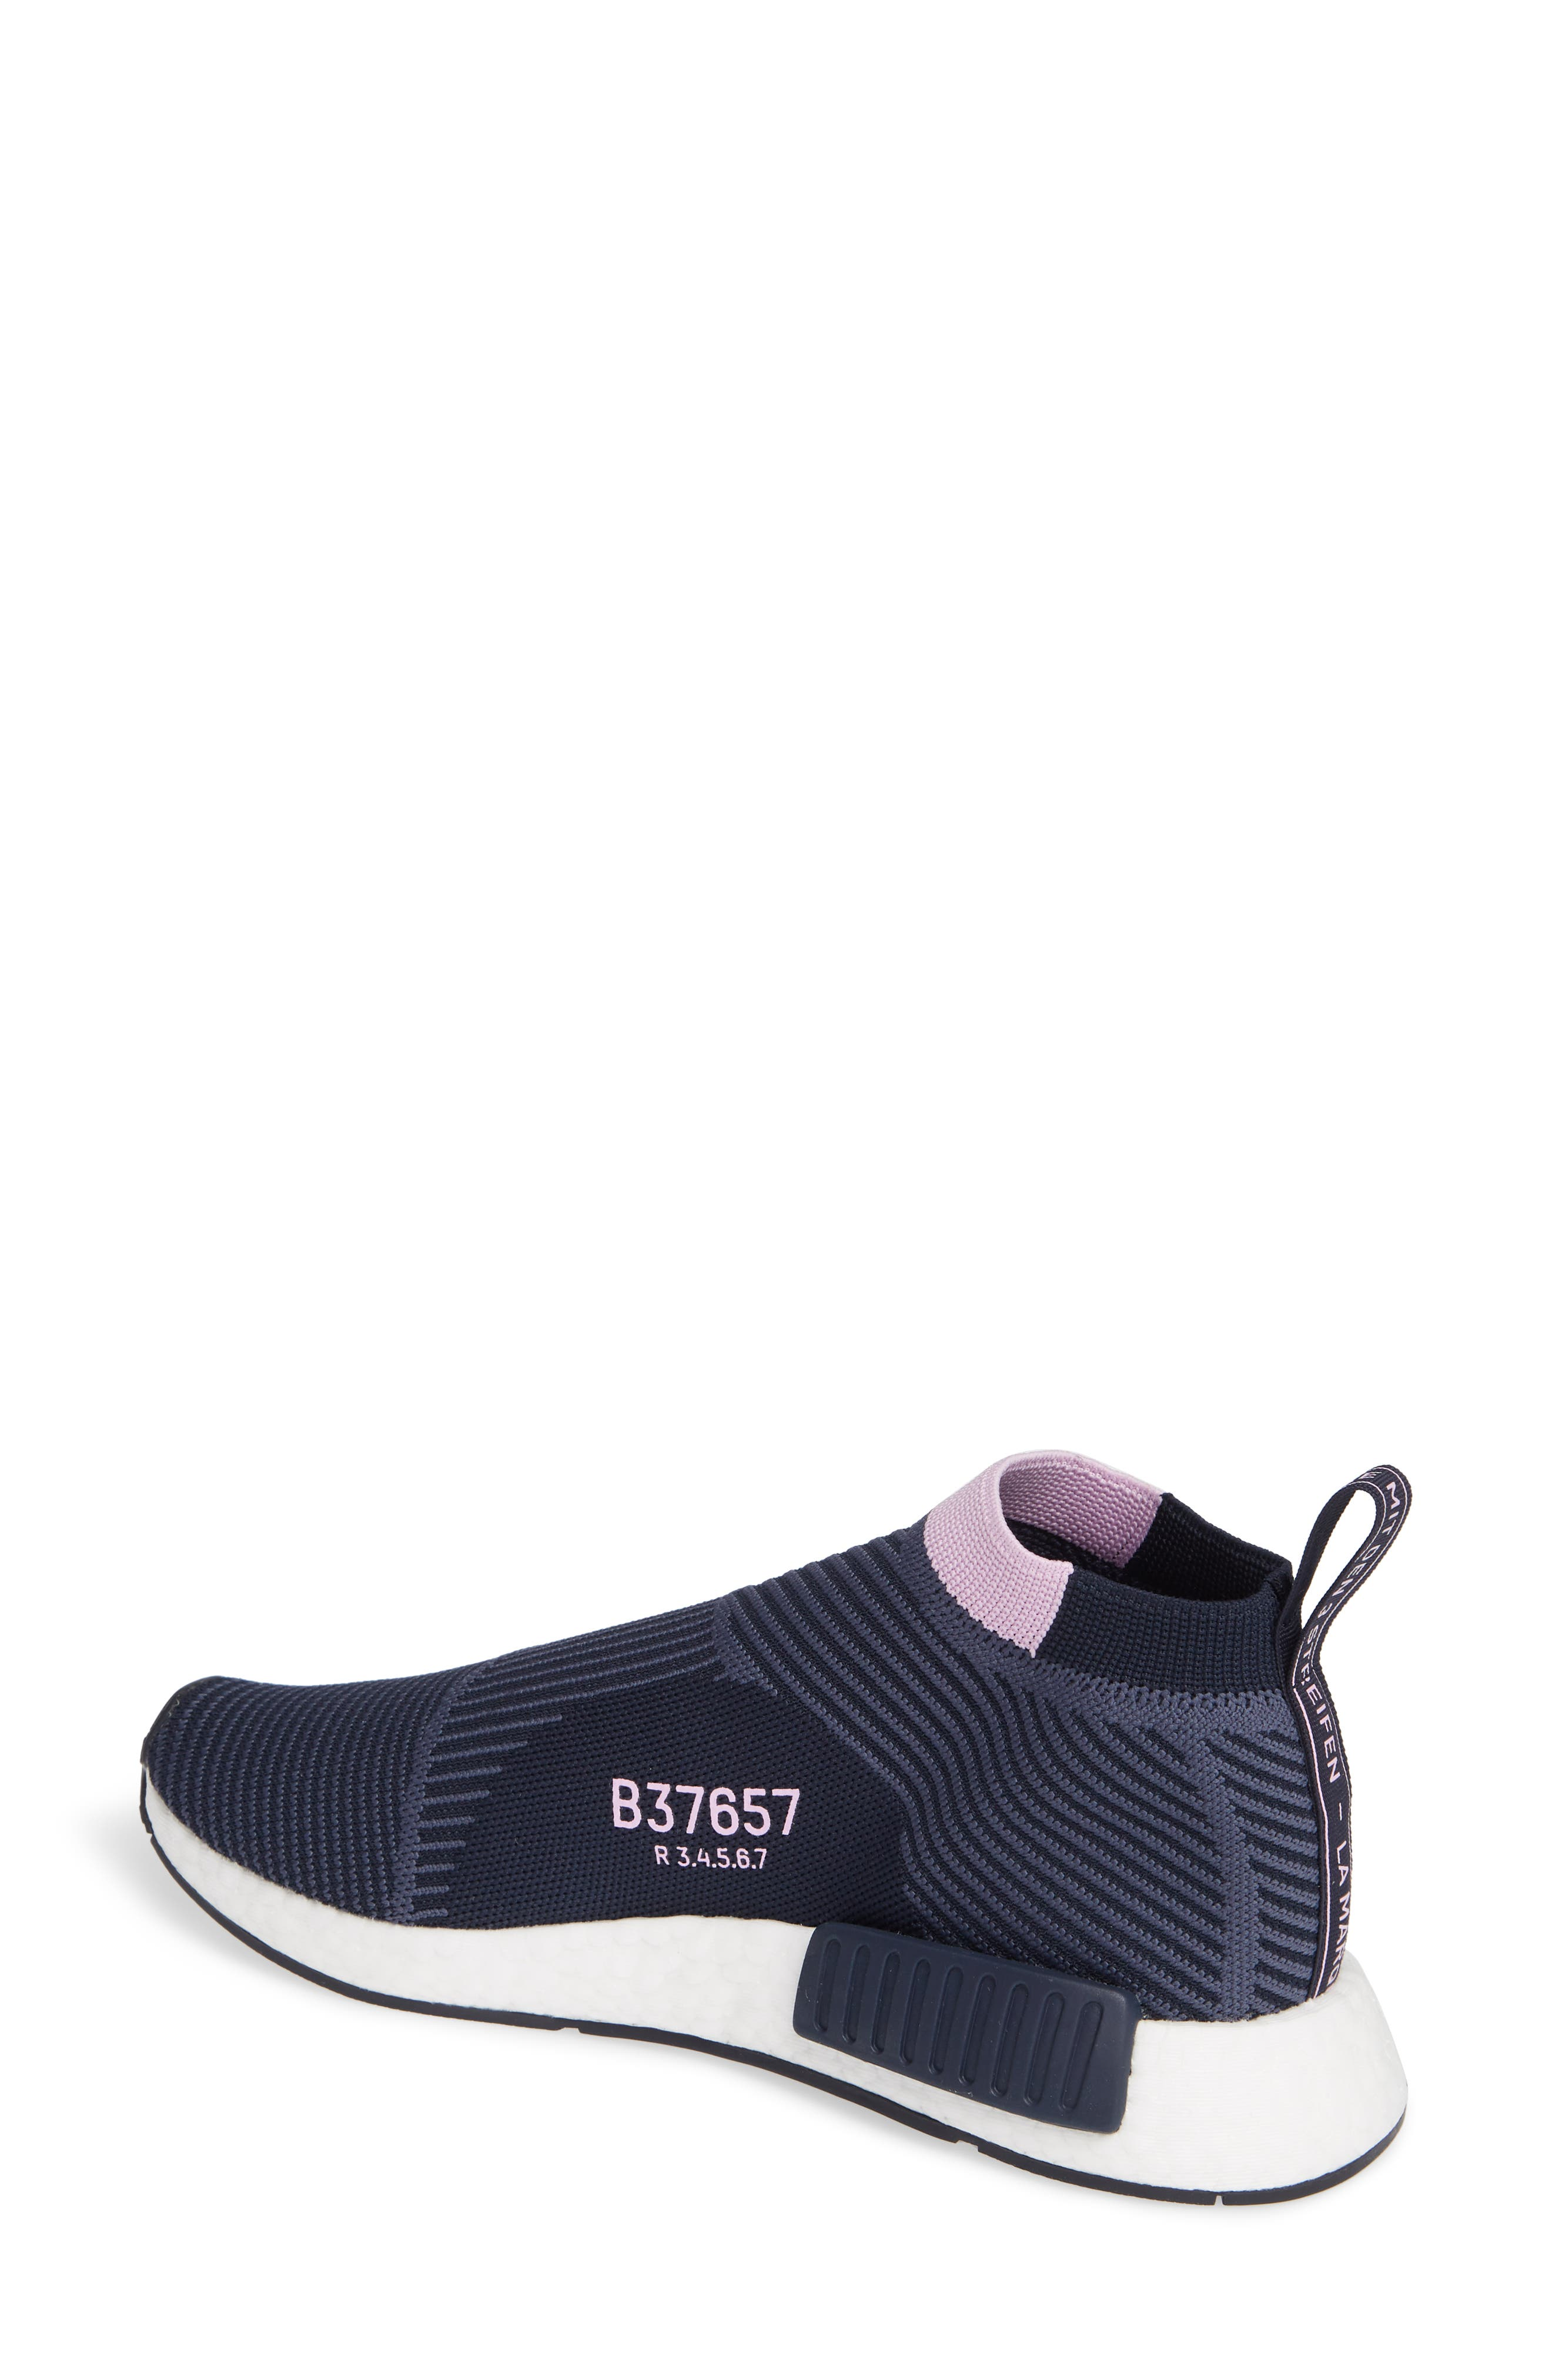 NMD_CS1 Primeknit Sneaker,                             Alternate thumbnail 2, color,                             LEGEND INK/ CLEAR LILAC